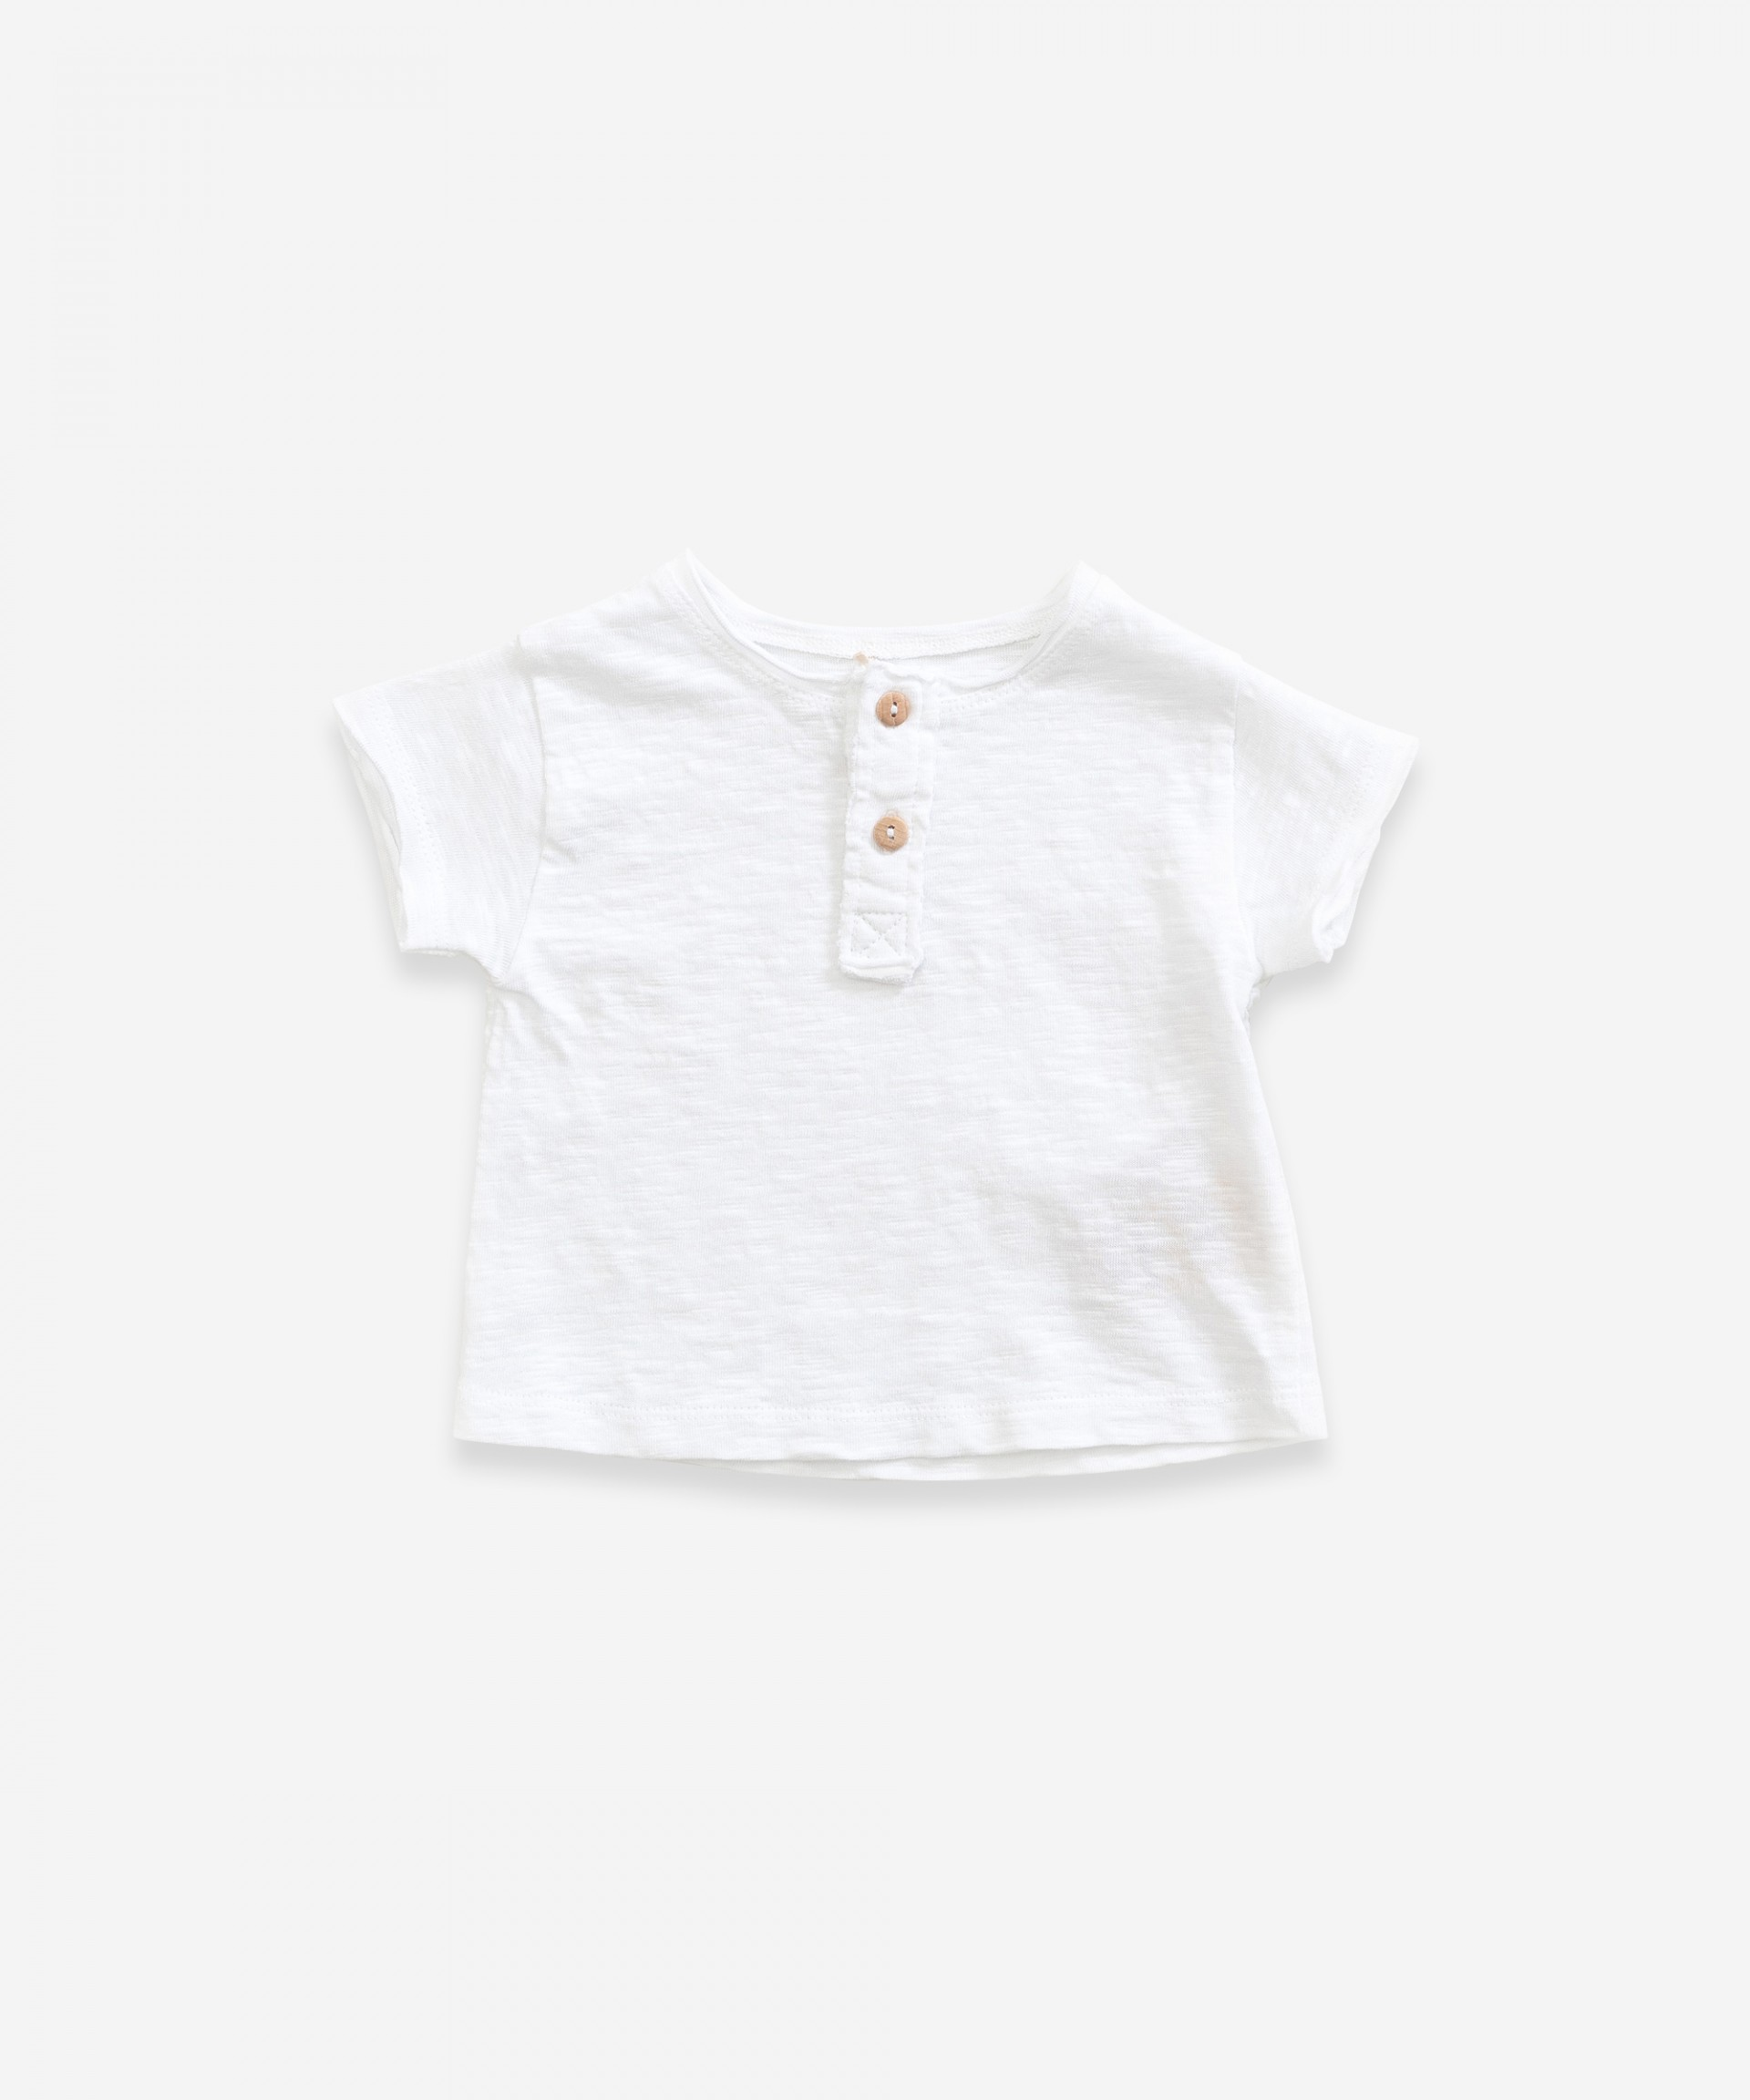 T-shirt in organic cotton with buttons | Weaving